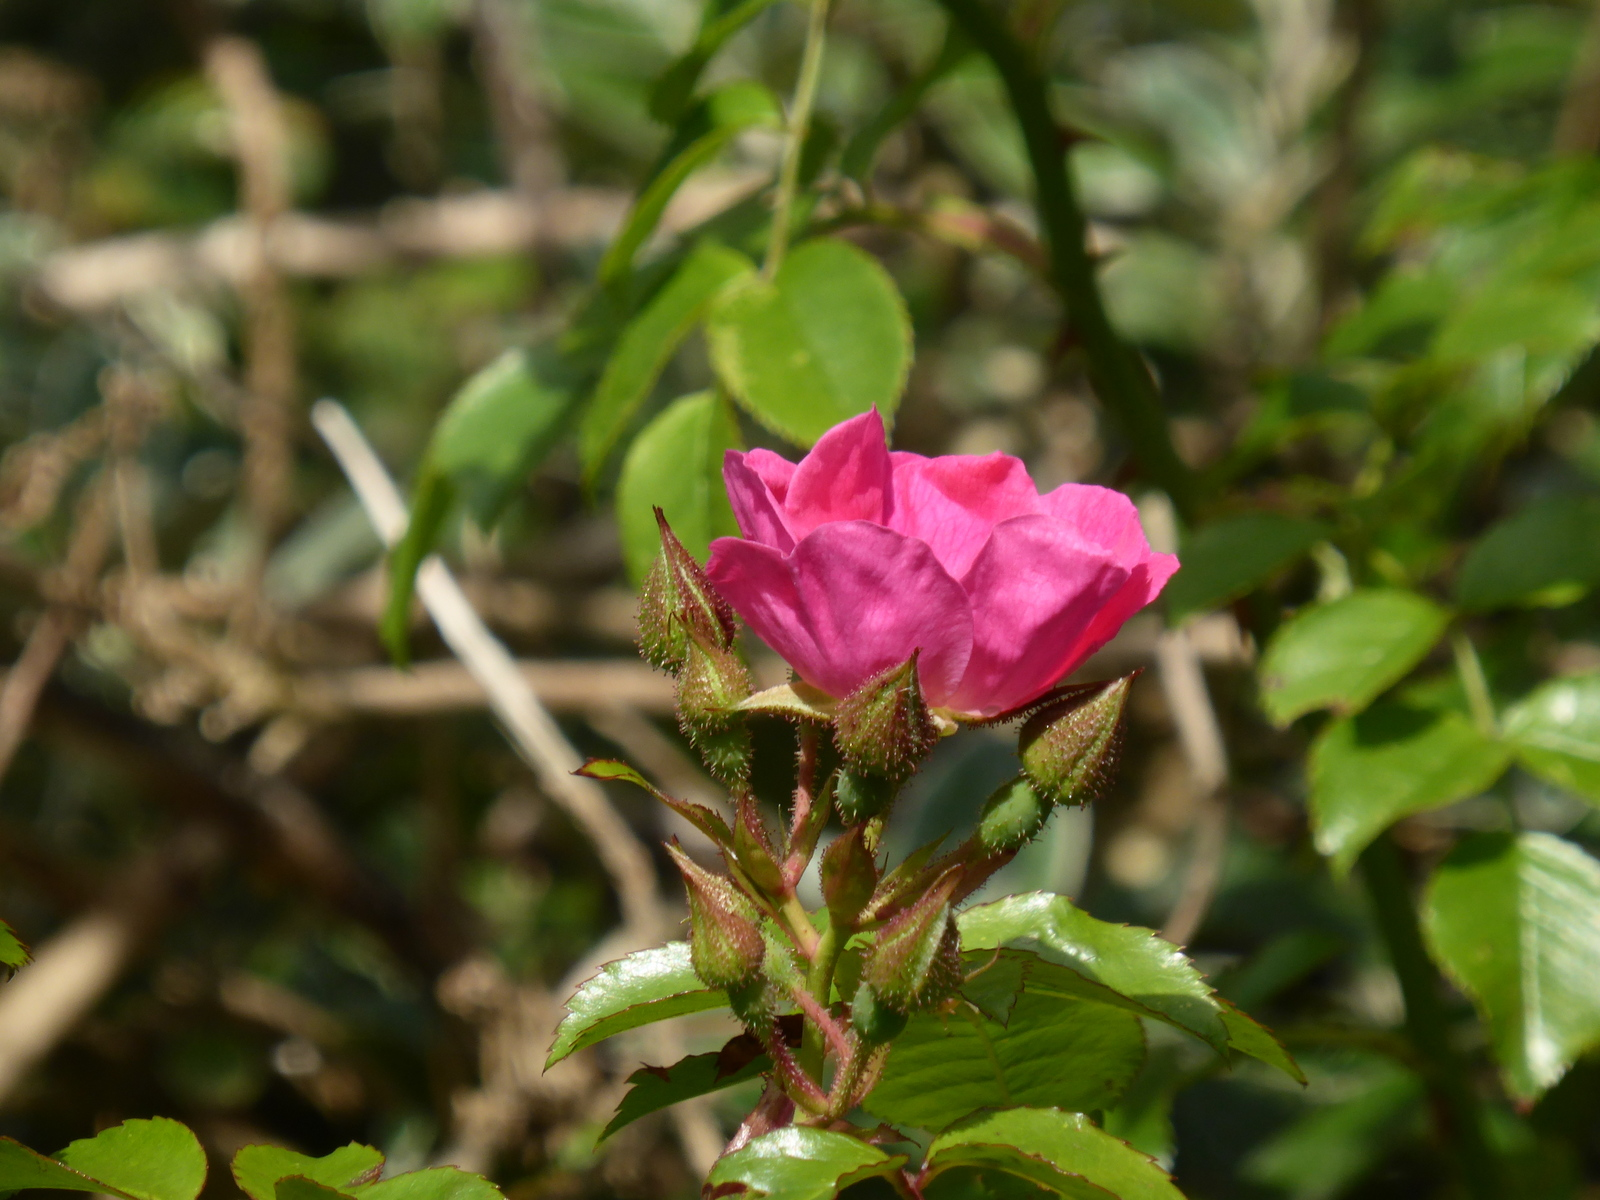 pink wild rose catching the sun